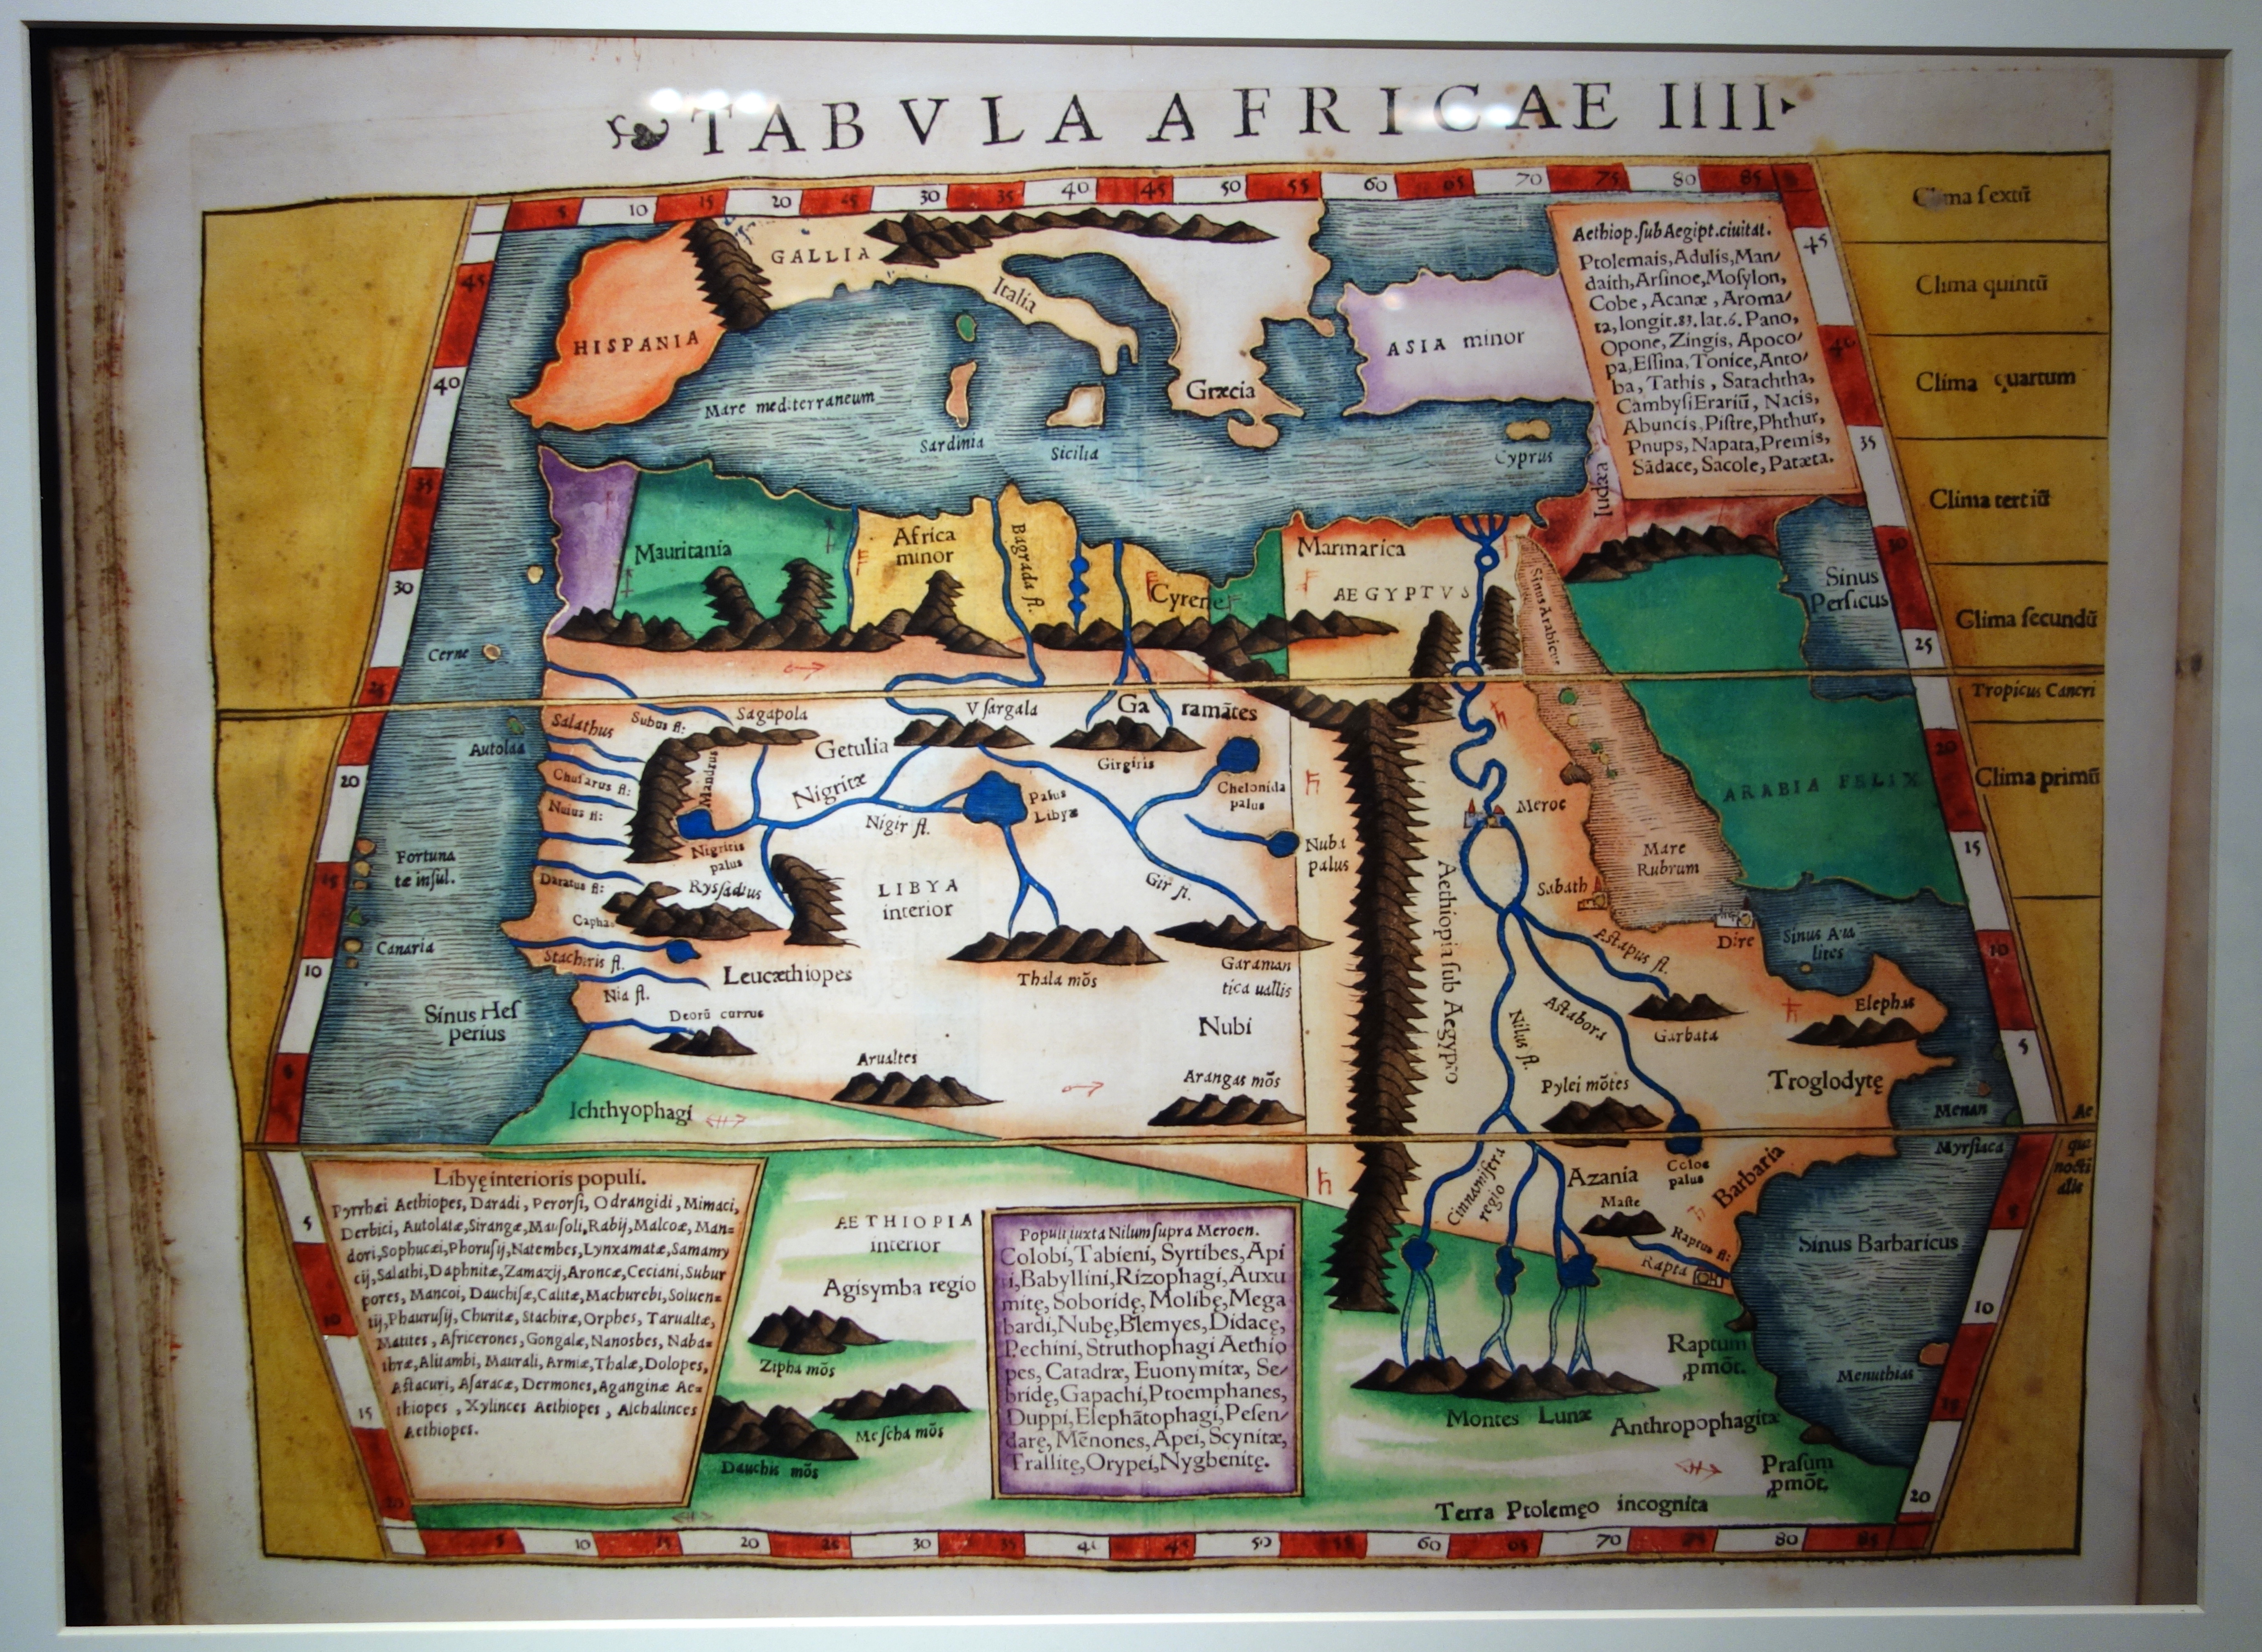 Geographia by Ptolemy, Aphricae Tabula IIII, 1540 Basel edition - Maps of Africa - Robert C. Williams Paper Museum - DSC00631